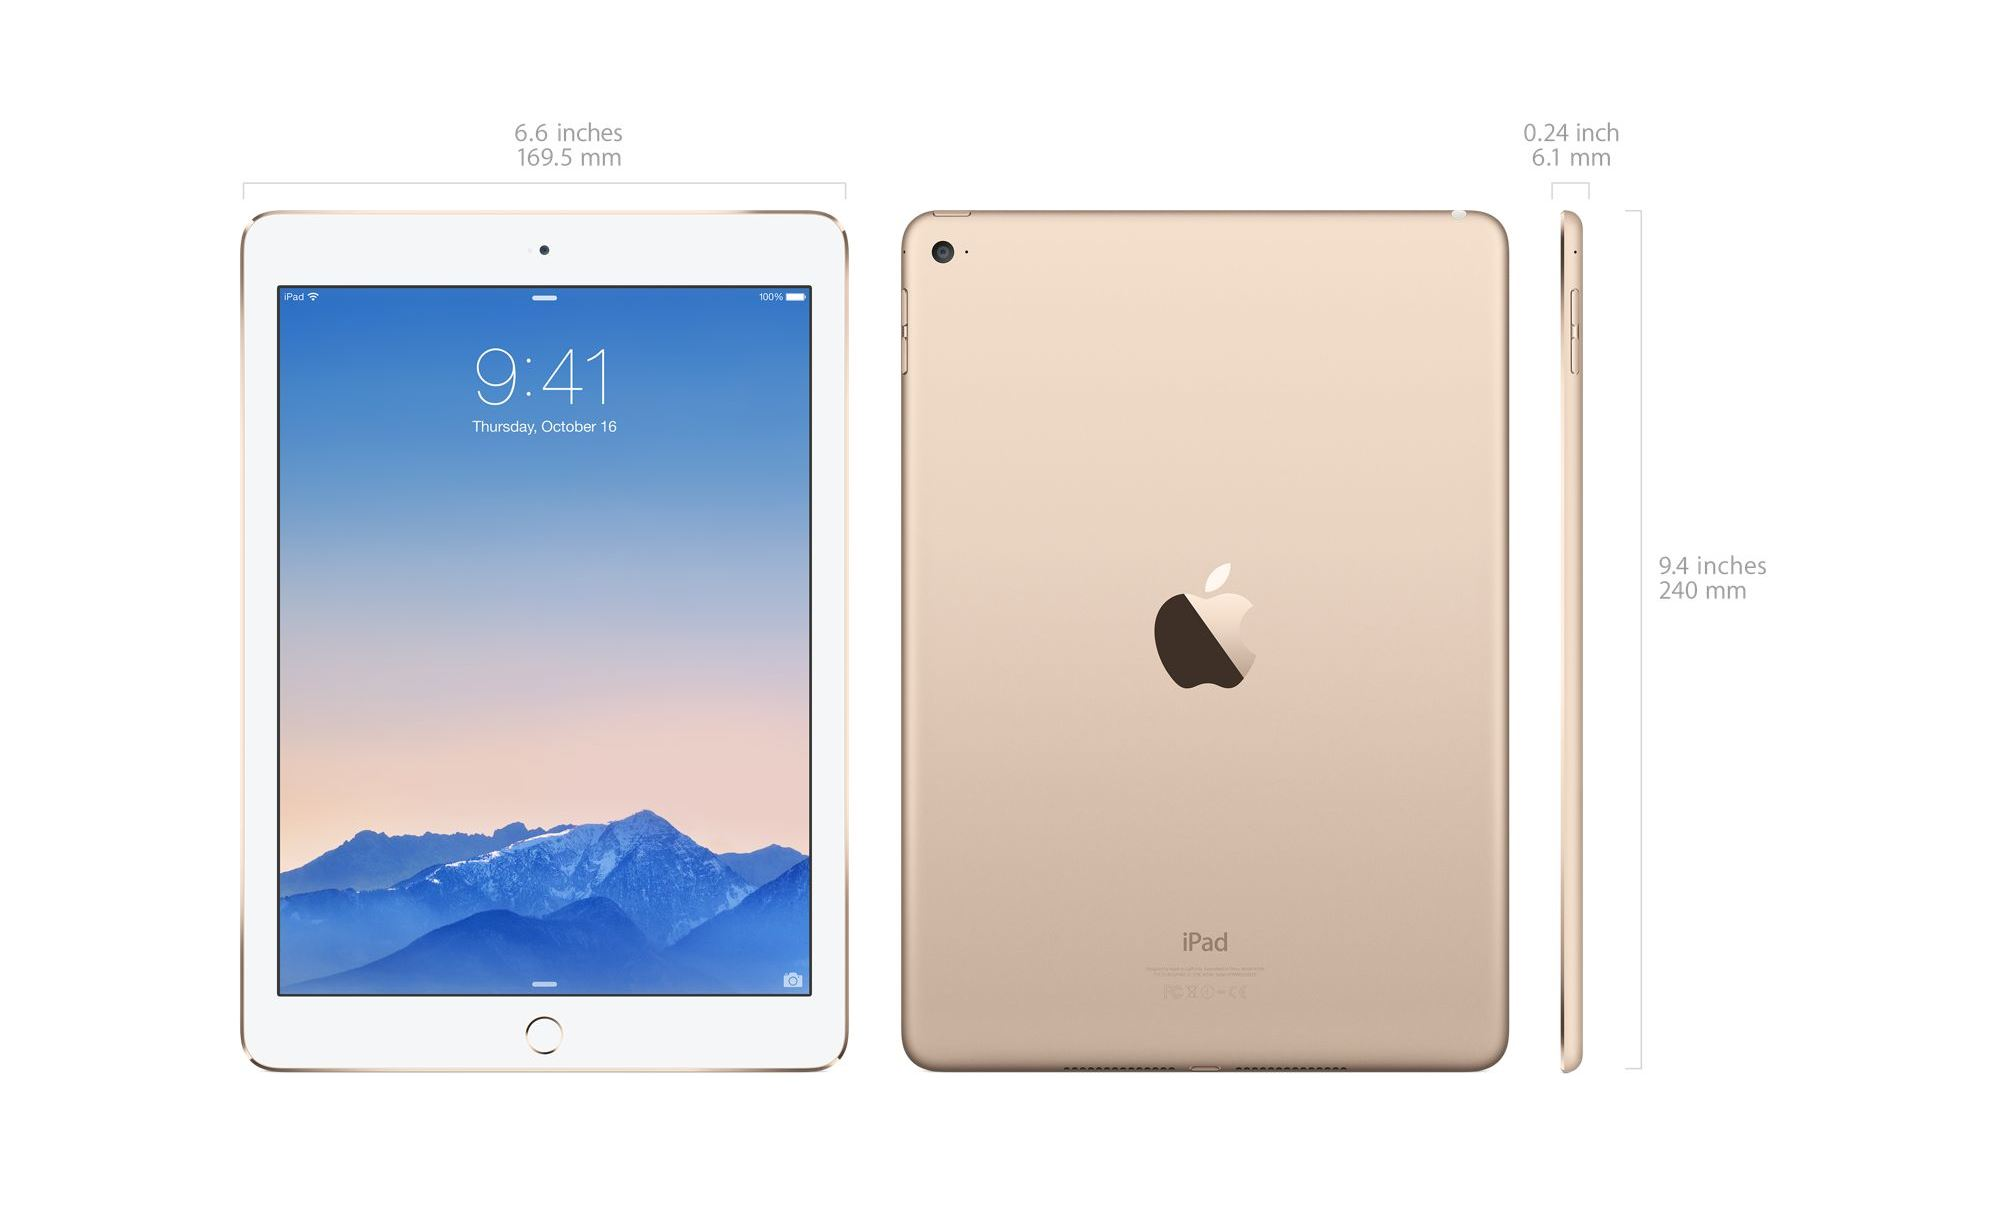 Iphone Misure Apple Ipad Air 2 16gb Wifi Gold Price In Pakistan